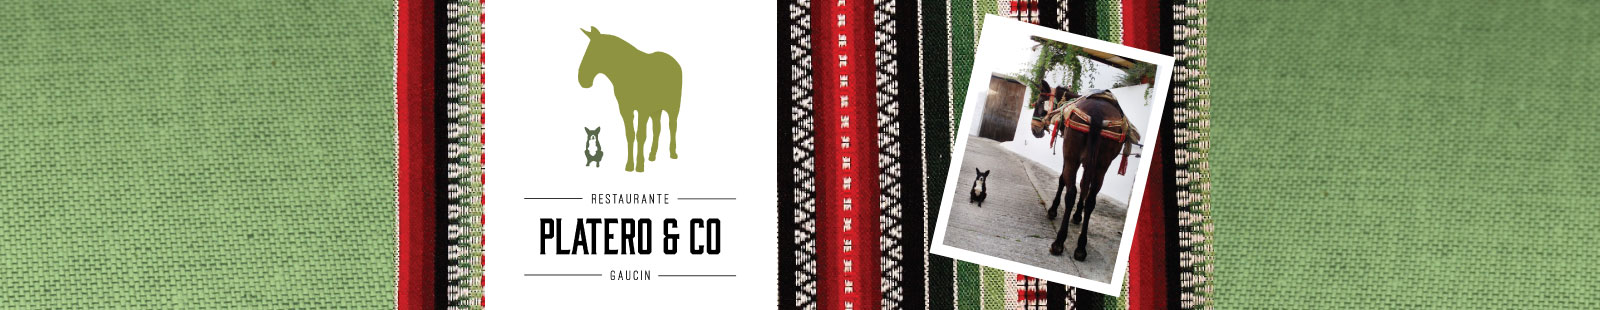 platero-banner-wide